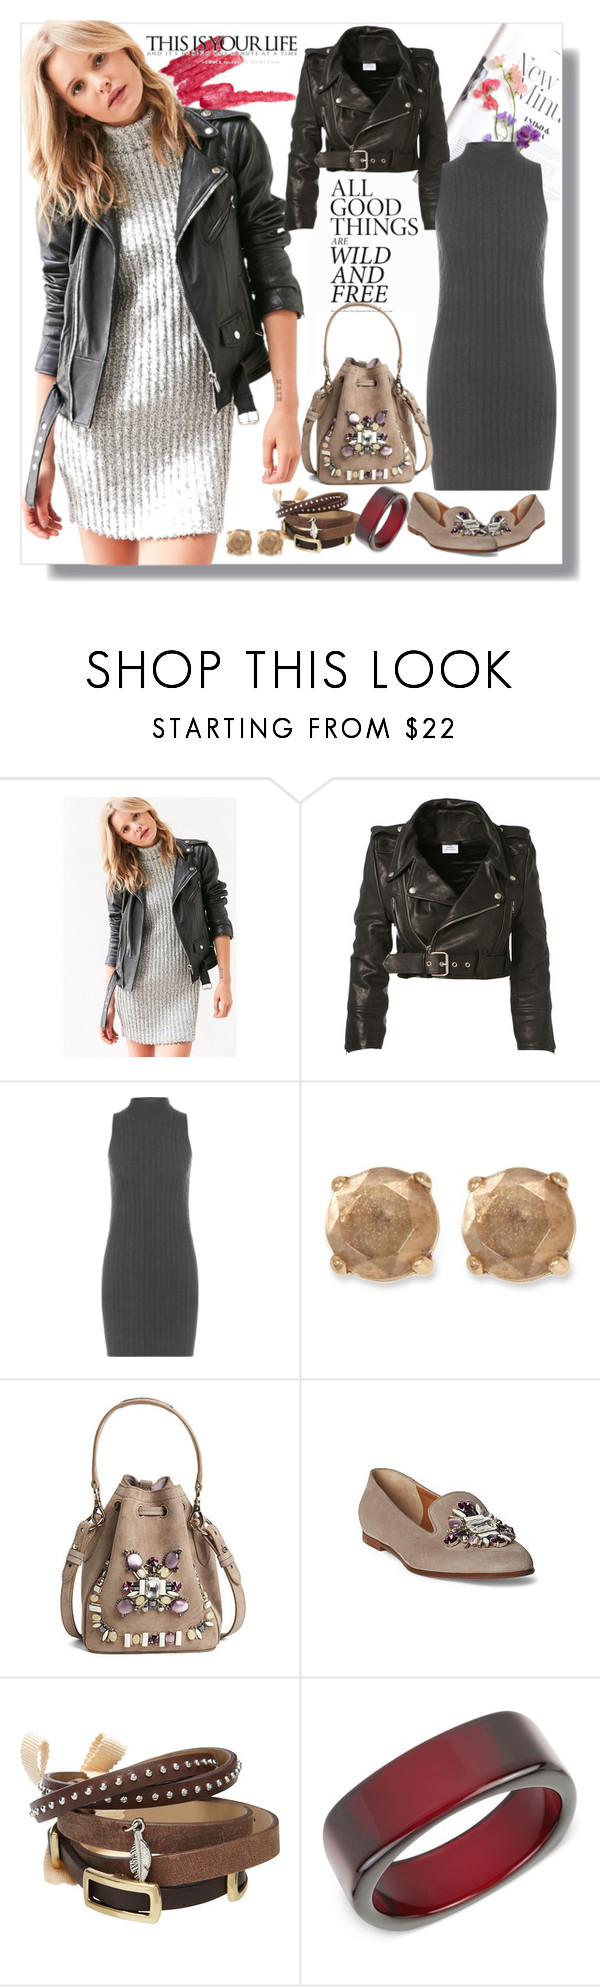 """351"" by believelikebreathing ❤ liked on Polyvore featuring Ilia, BDG, Vetements, WearAll, Ralph Lauren, TOKYObay, INC International Concepts and turtleneckdresses"